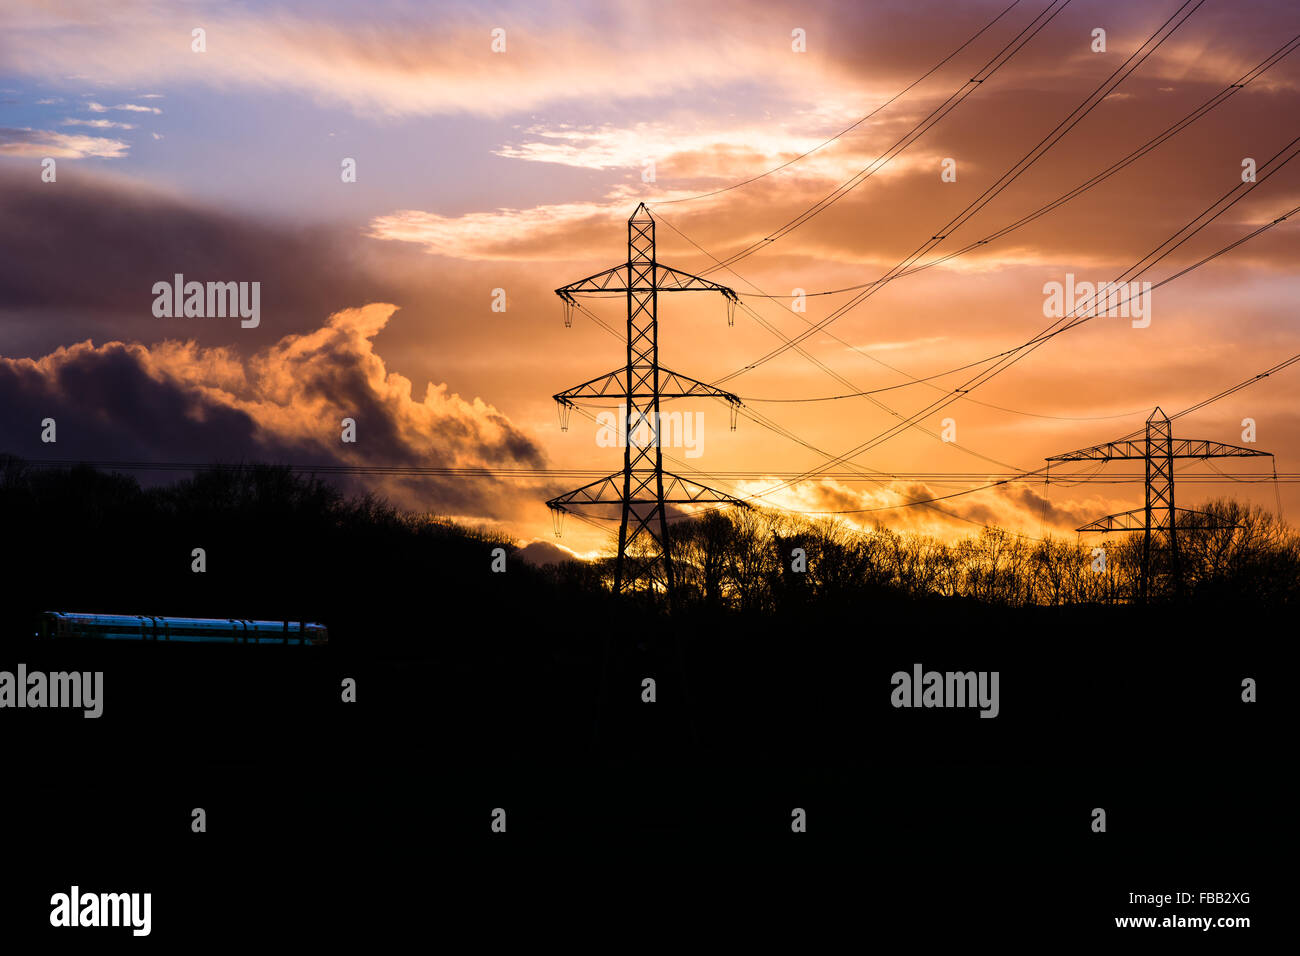 Industrial landscape with cables, train and sunset. Electricity cables and pylons are silhouetted in front of a - Stock Image